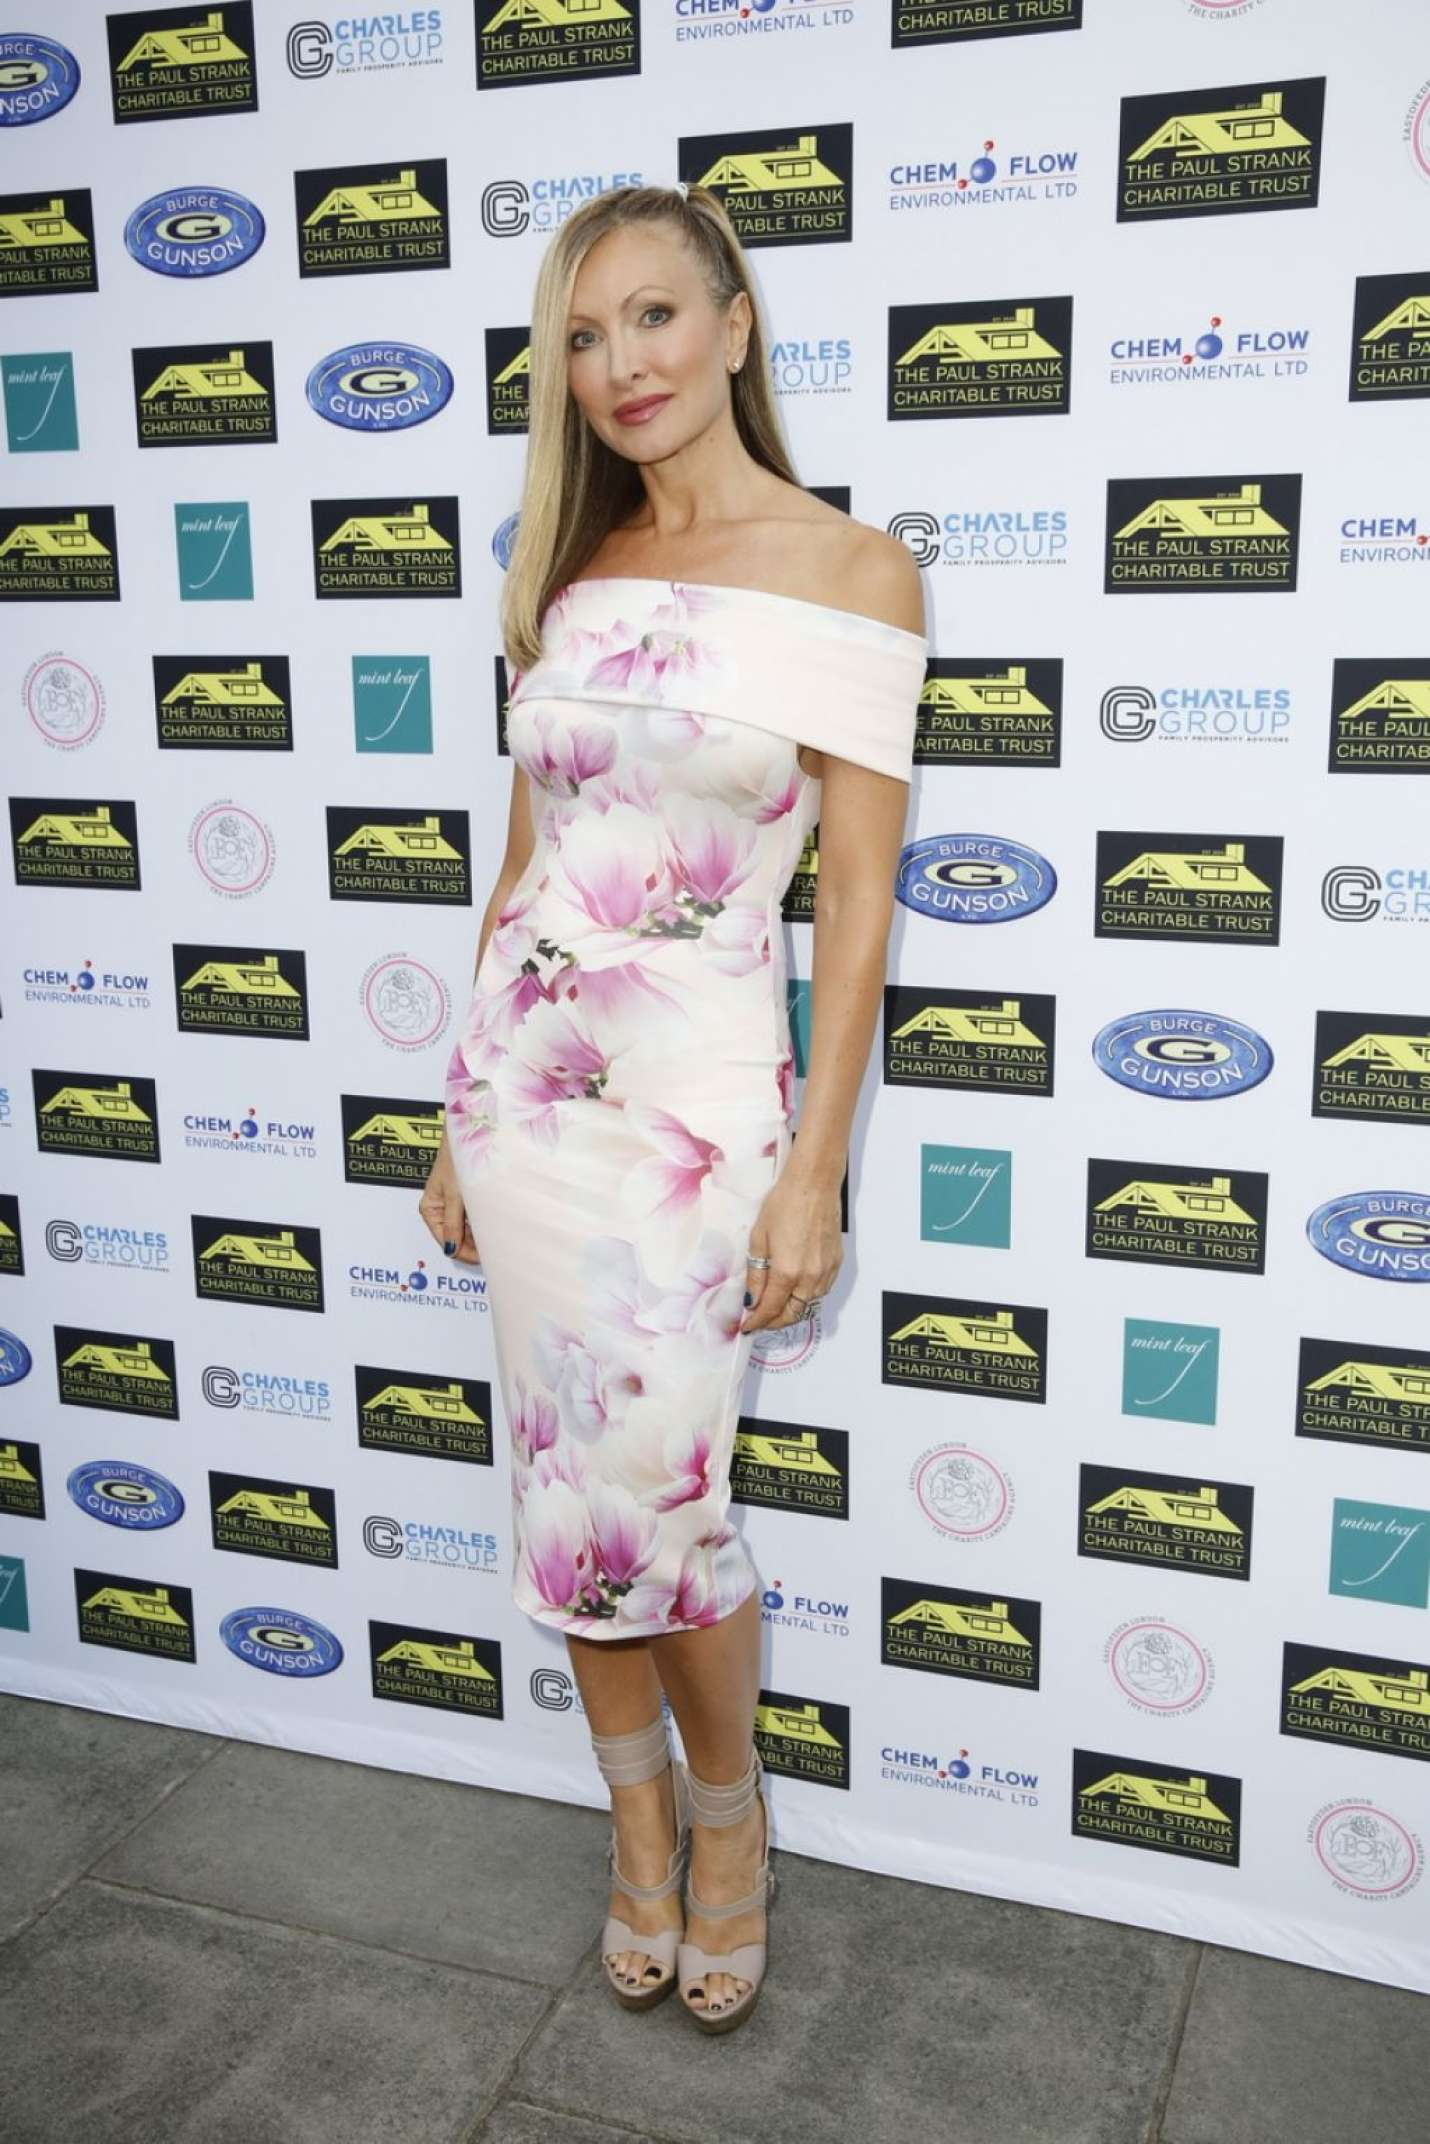 Caprice Bourret - Paul Strank Charitable Trust Summer Party in London